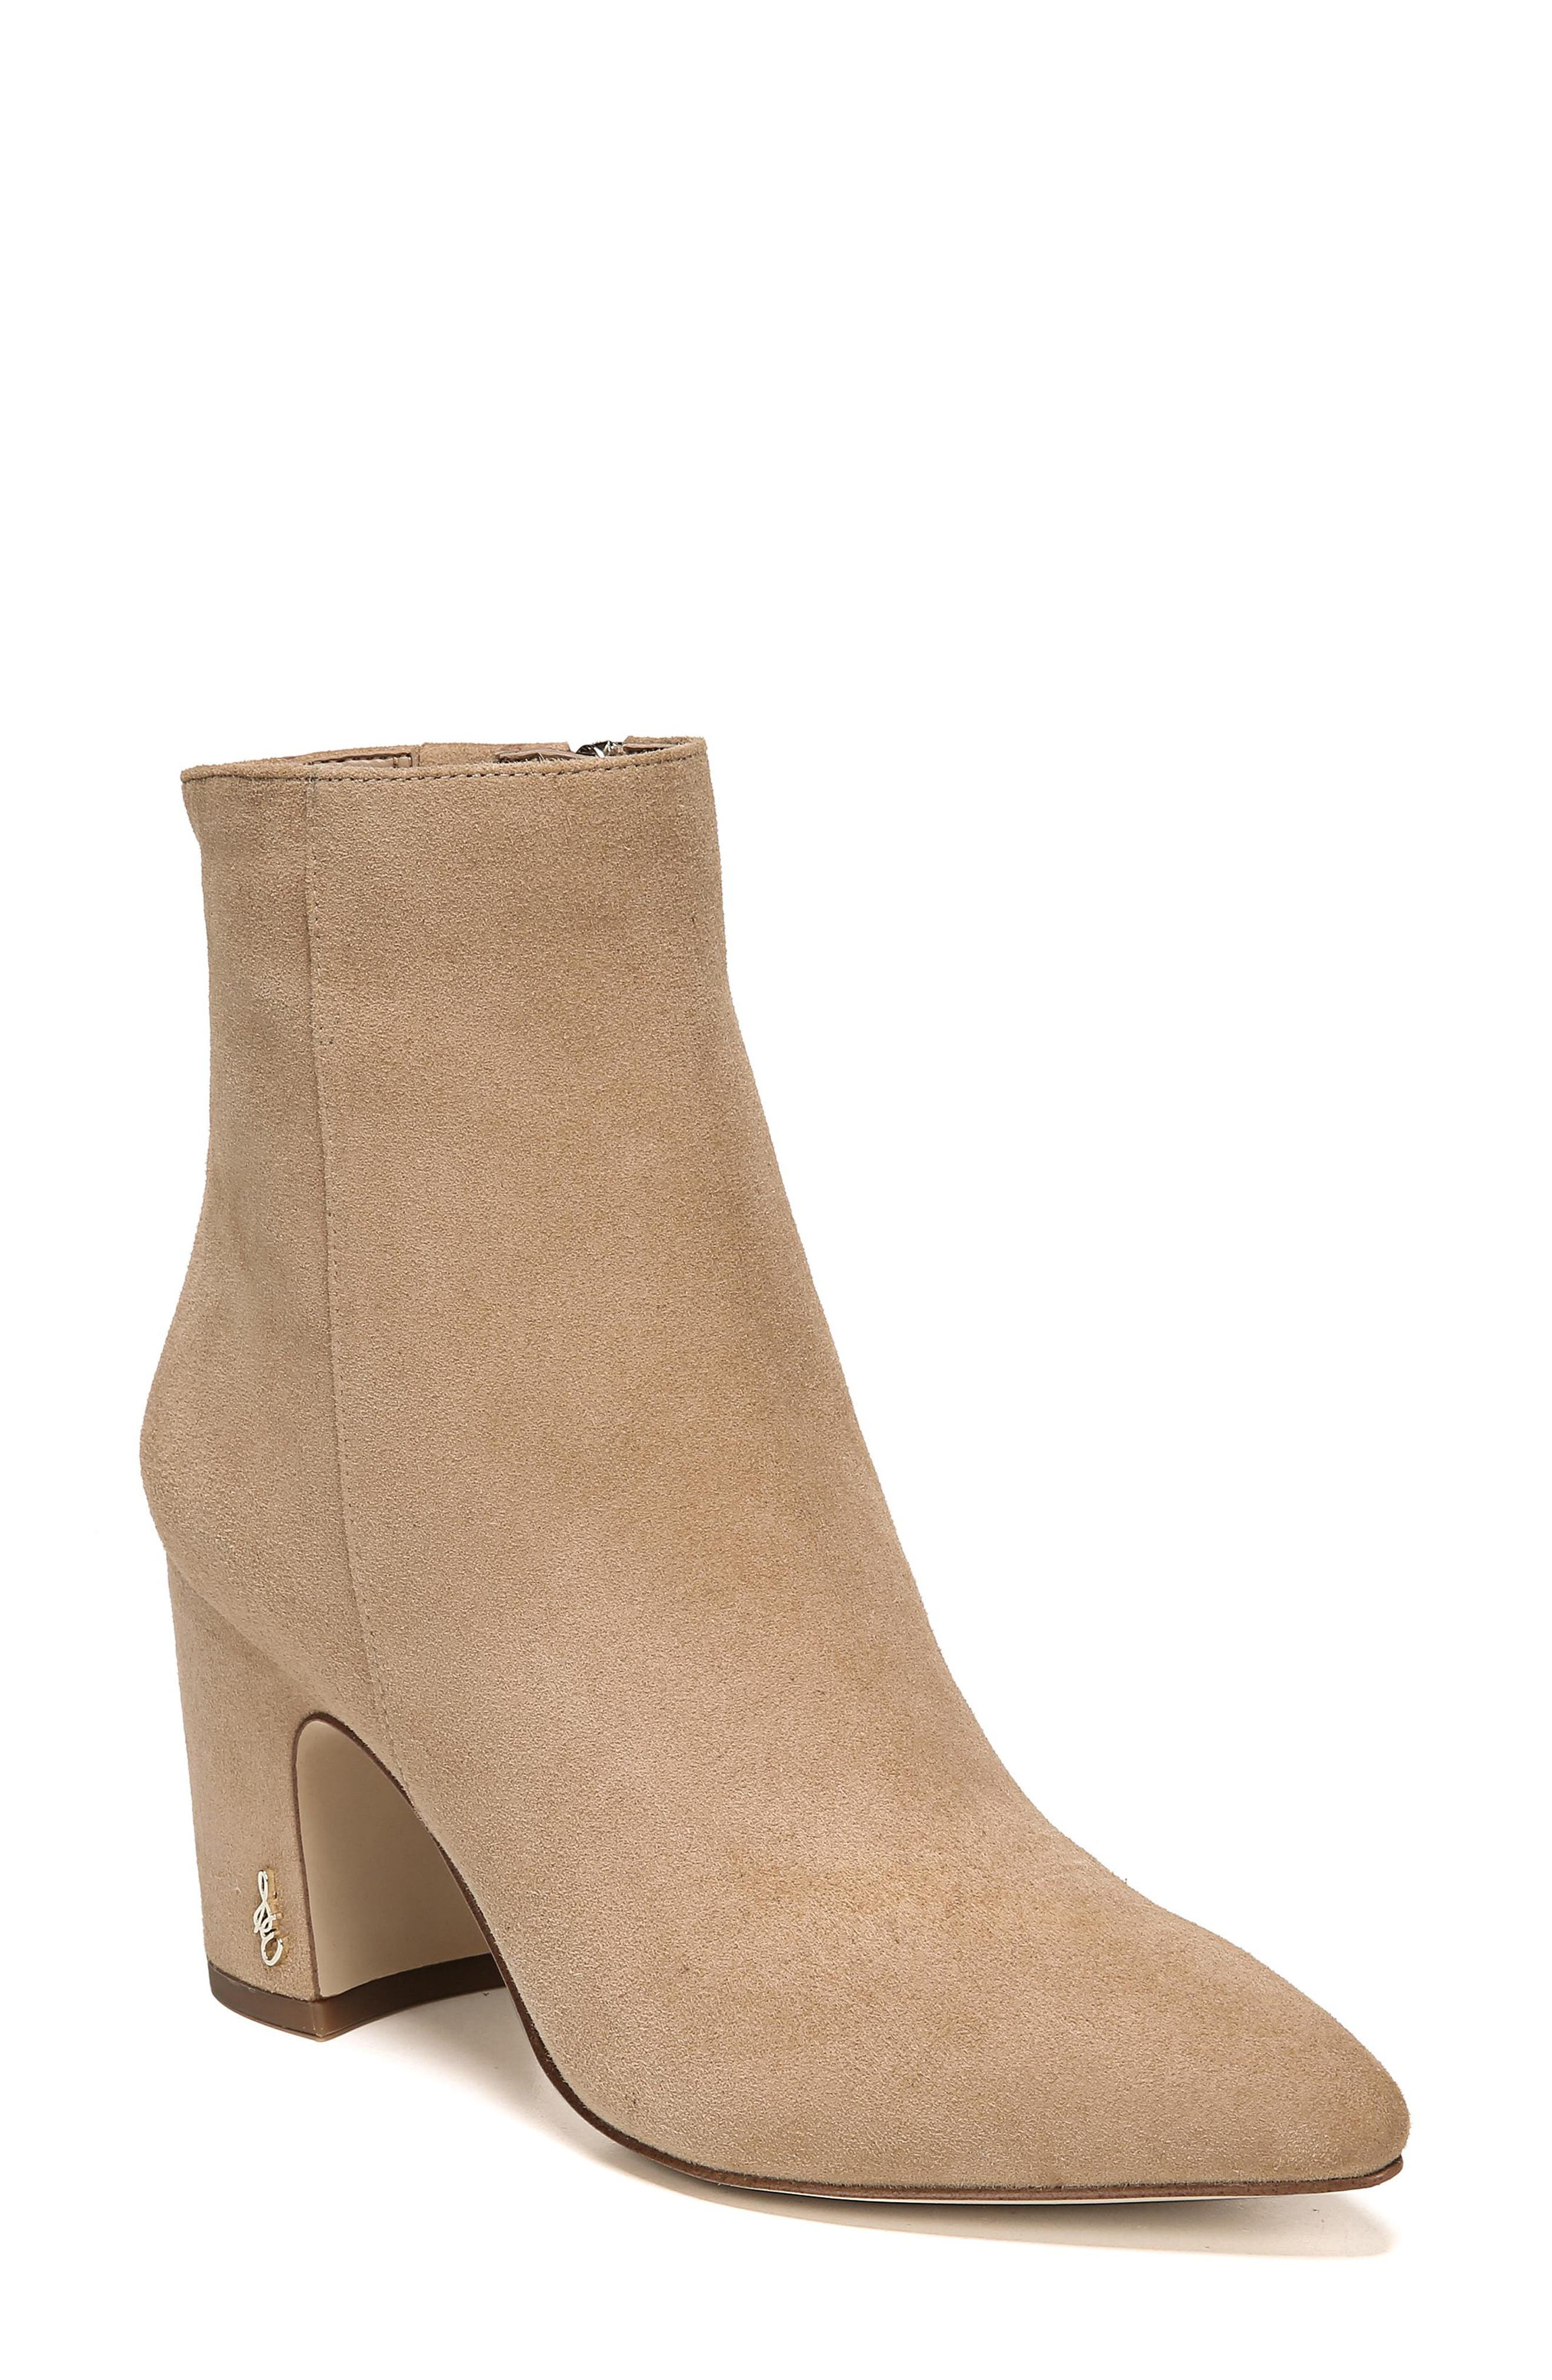 Sam Edelman Hilty Bootie, Brown